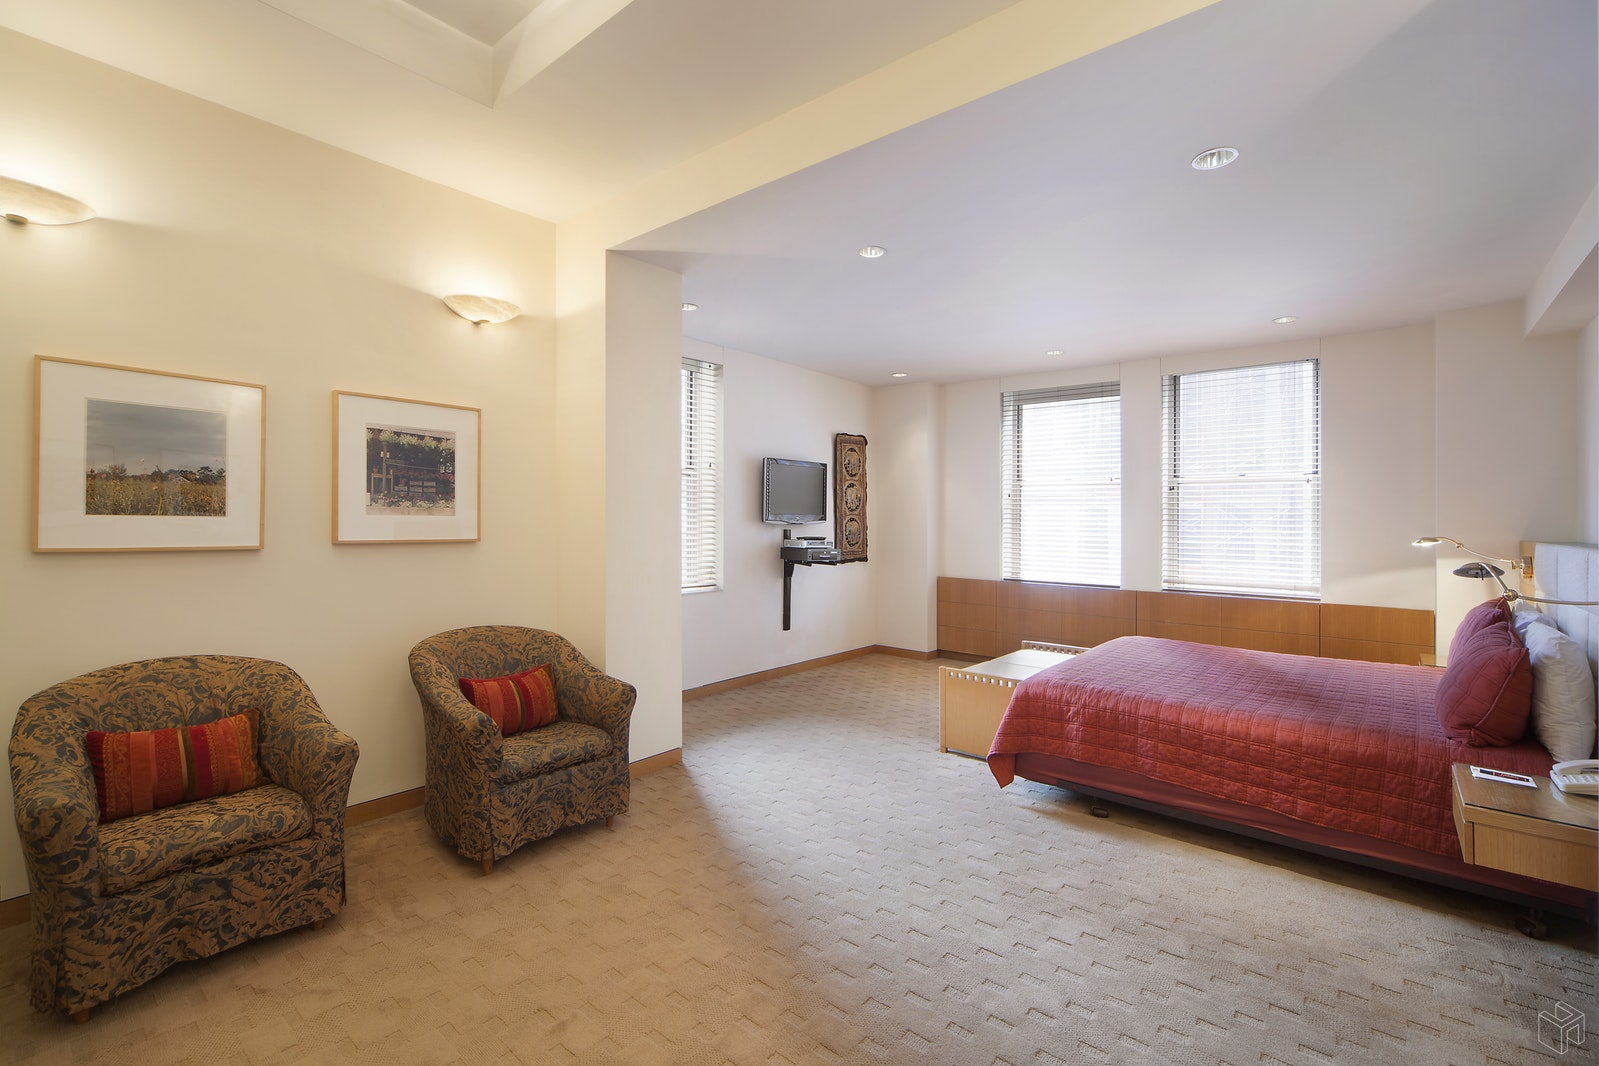 111 EAST 56TH STREET 1400, Midtown East, $925,000, Web #: 14253195